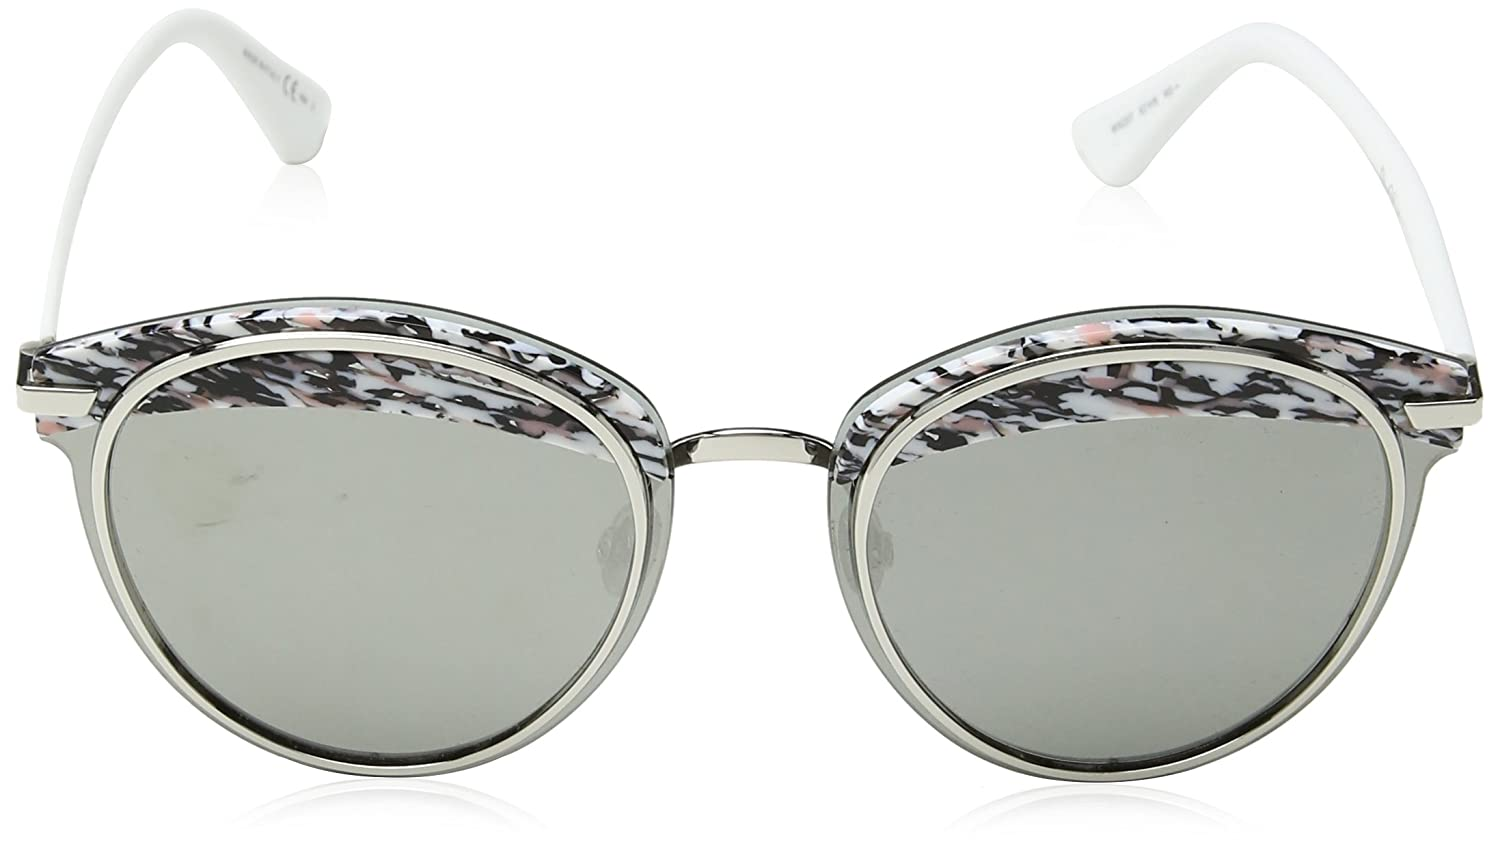 d639cff7542 Amazon.com  Christian Dior Offset1 W6Q White Grey Offset1 Round Sunglasses  Lens Category 3  Christian Dior  Clothing